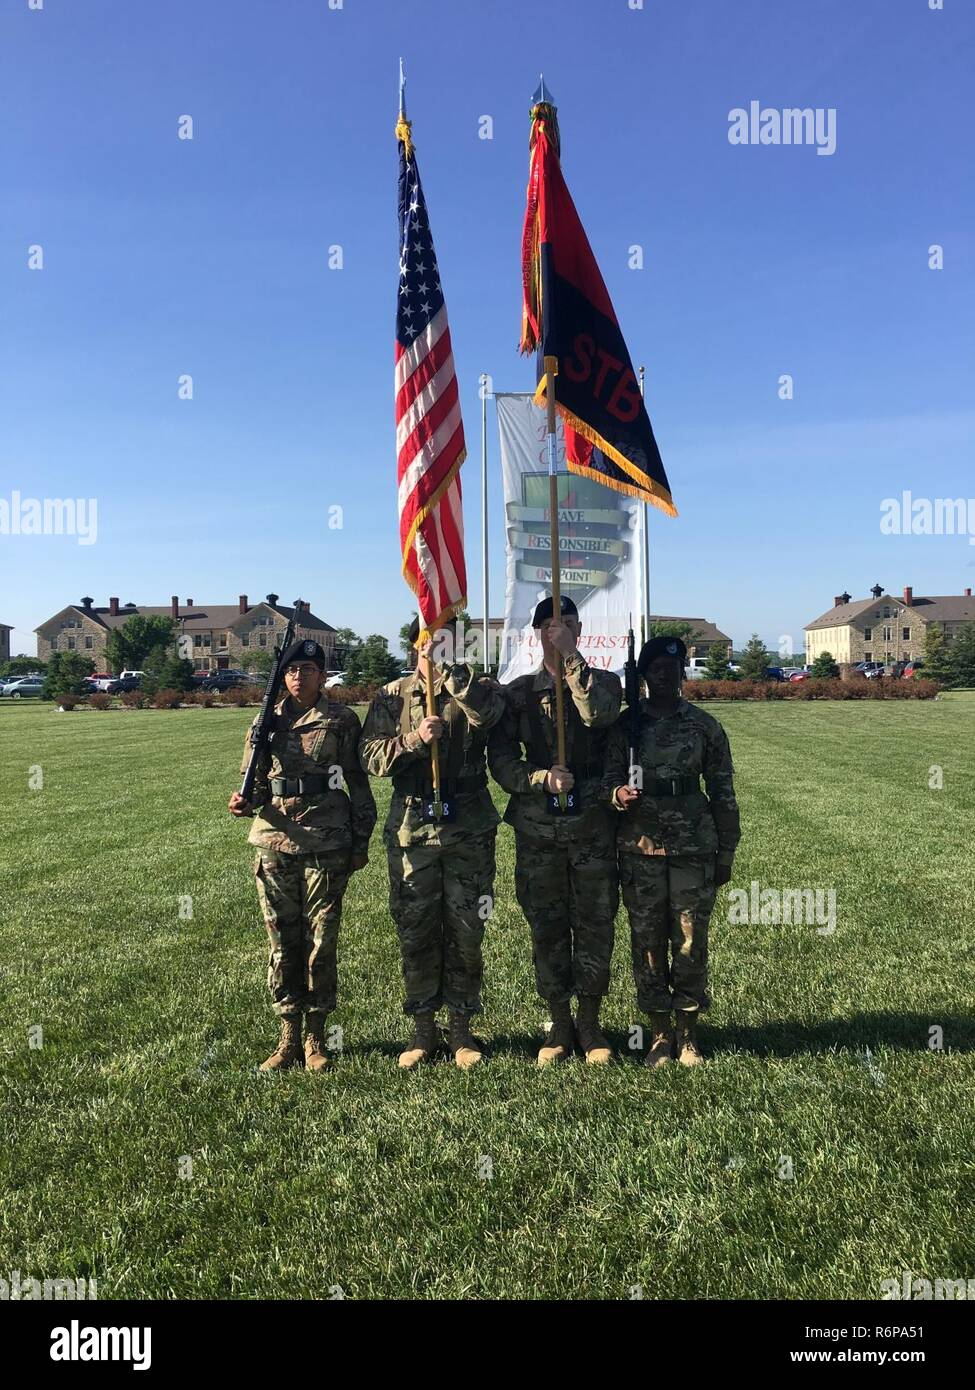 Pfc. Yaa Agyemang (far right), financial clerk 9th Financial Management Sustainment Unit, 1st Infantry Division, Sustainment Brigade, performs her duty as a rifleman of the Honor Guard during a change of command ceremony for Special Troops Battalion, Sustainment Brigade, on May 18, 2017 on Calvary Parade Field at Ft. Riley, KS. Agyemang was hand picked by the unit's Command Sgt. Maj. to perform the duty. ( - Stock Image